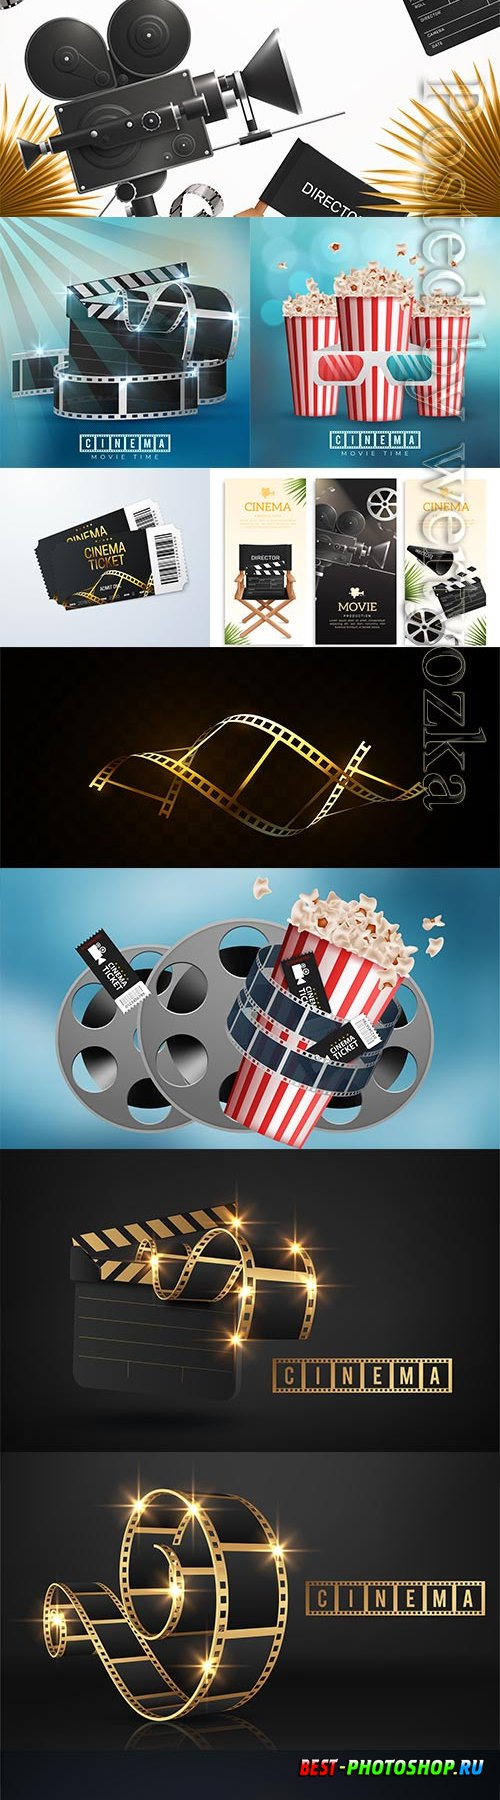 Realistic cinema movie background with film reel, clapper, popcorn, 3d glasses